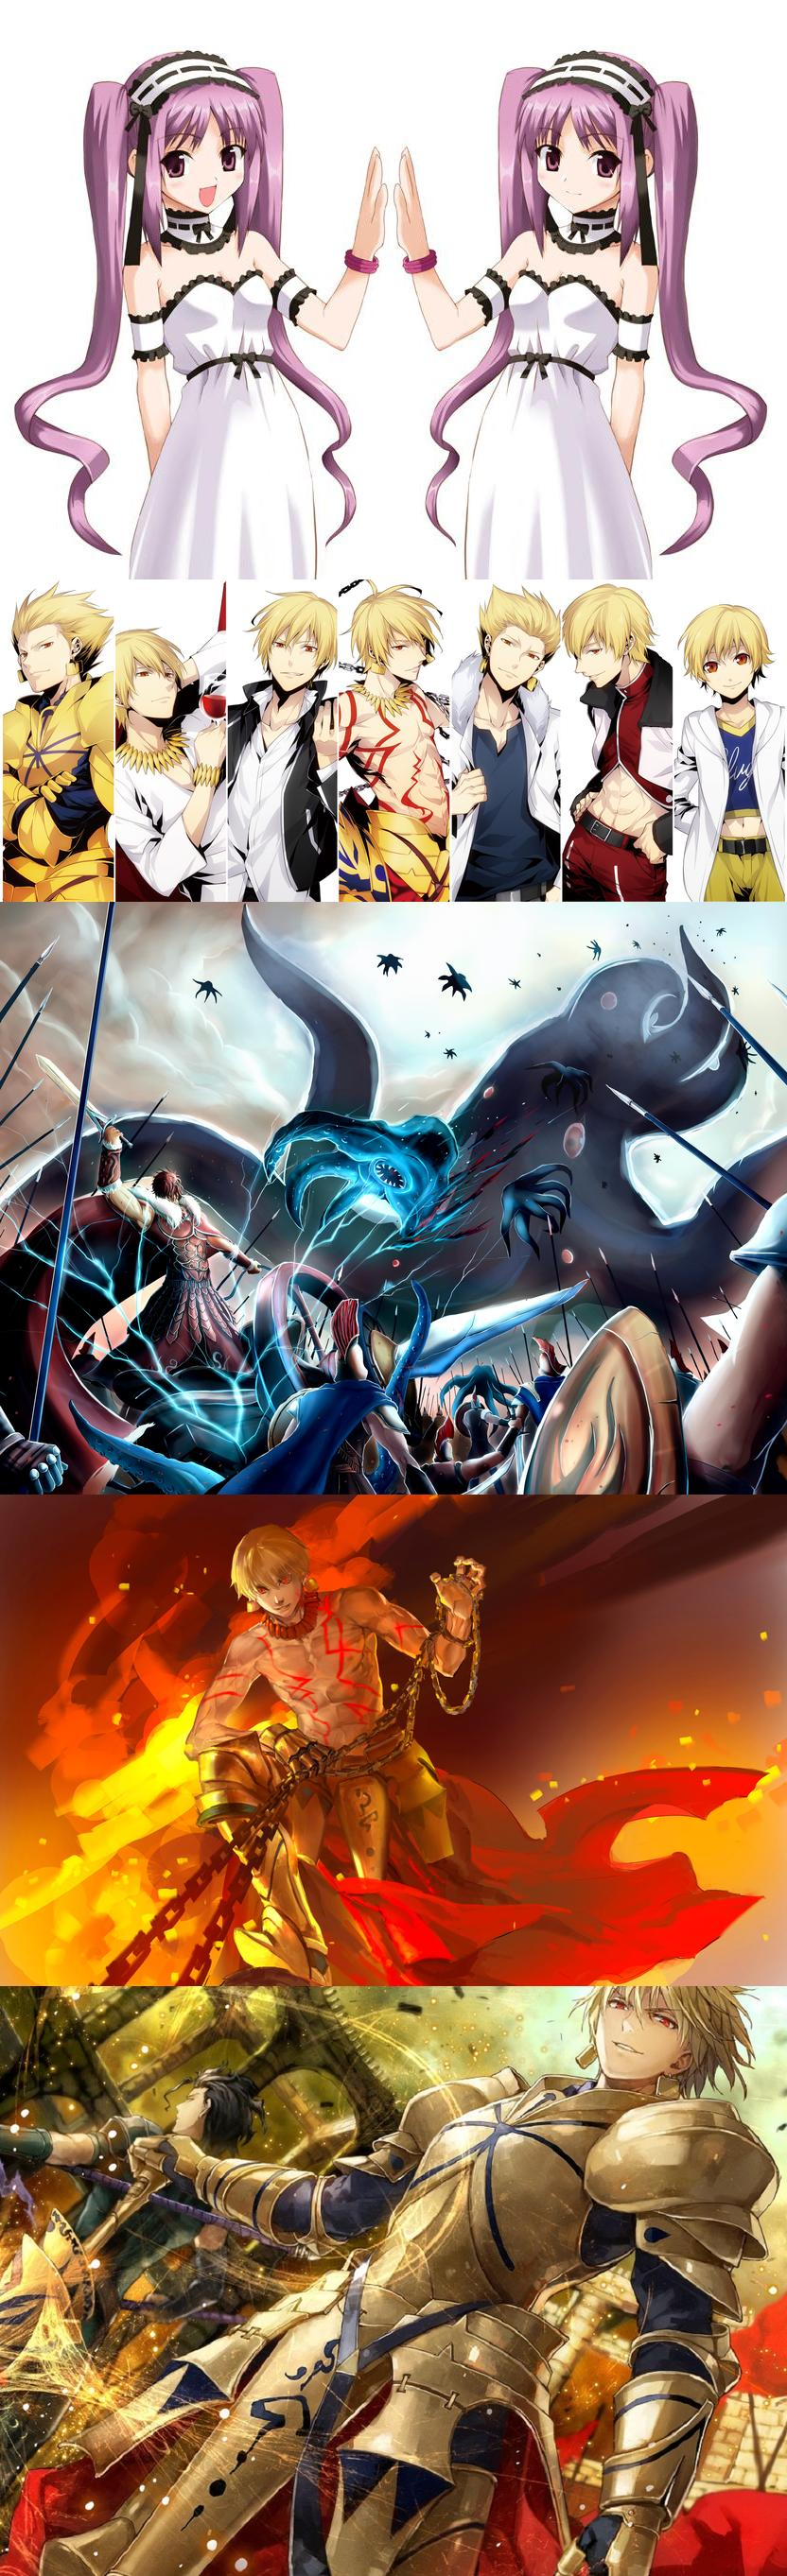 Unlimited Gilgamesh Fate stay night anime, Anime king, Anime